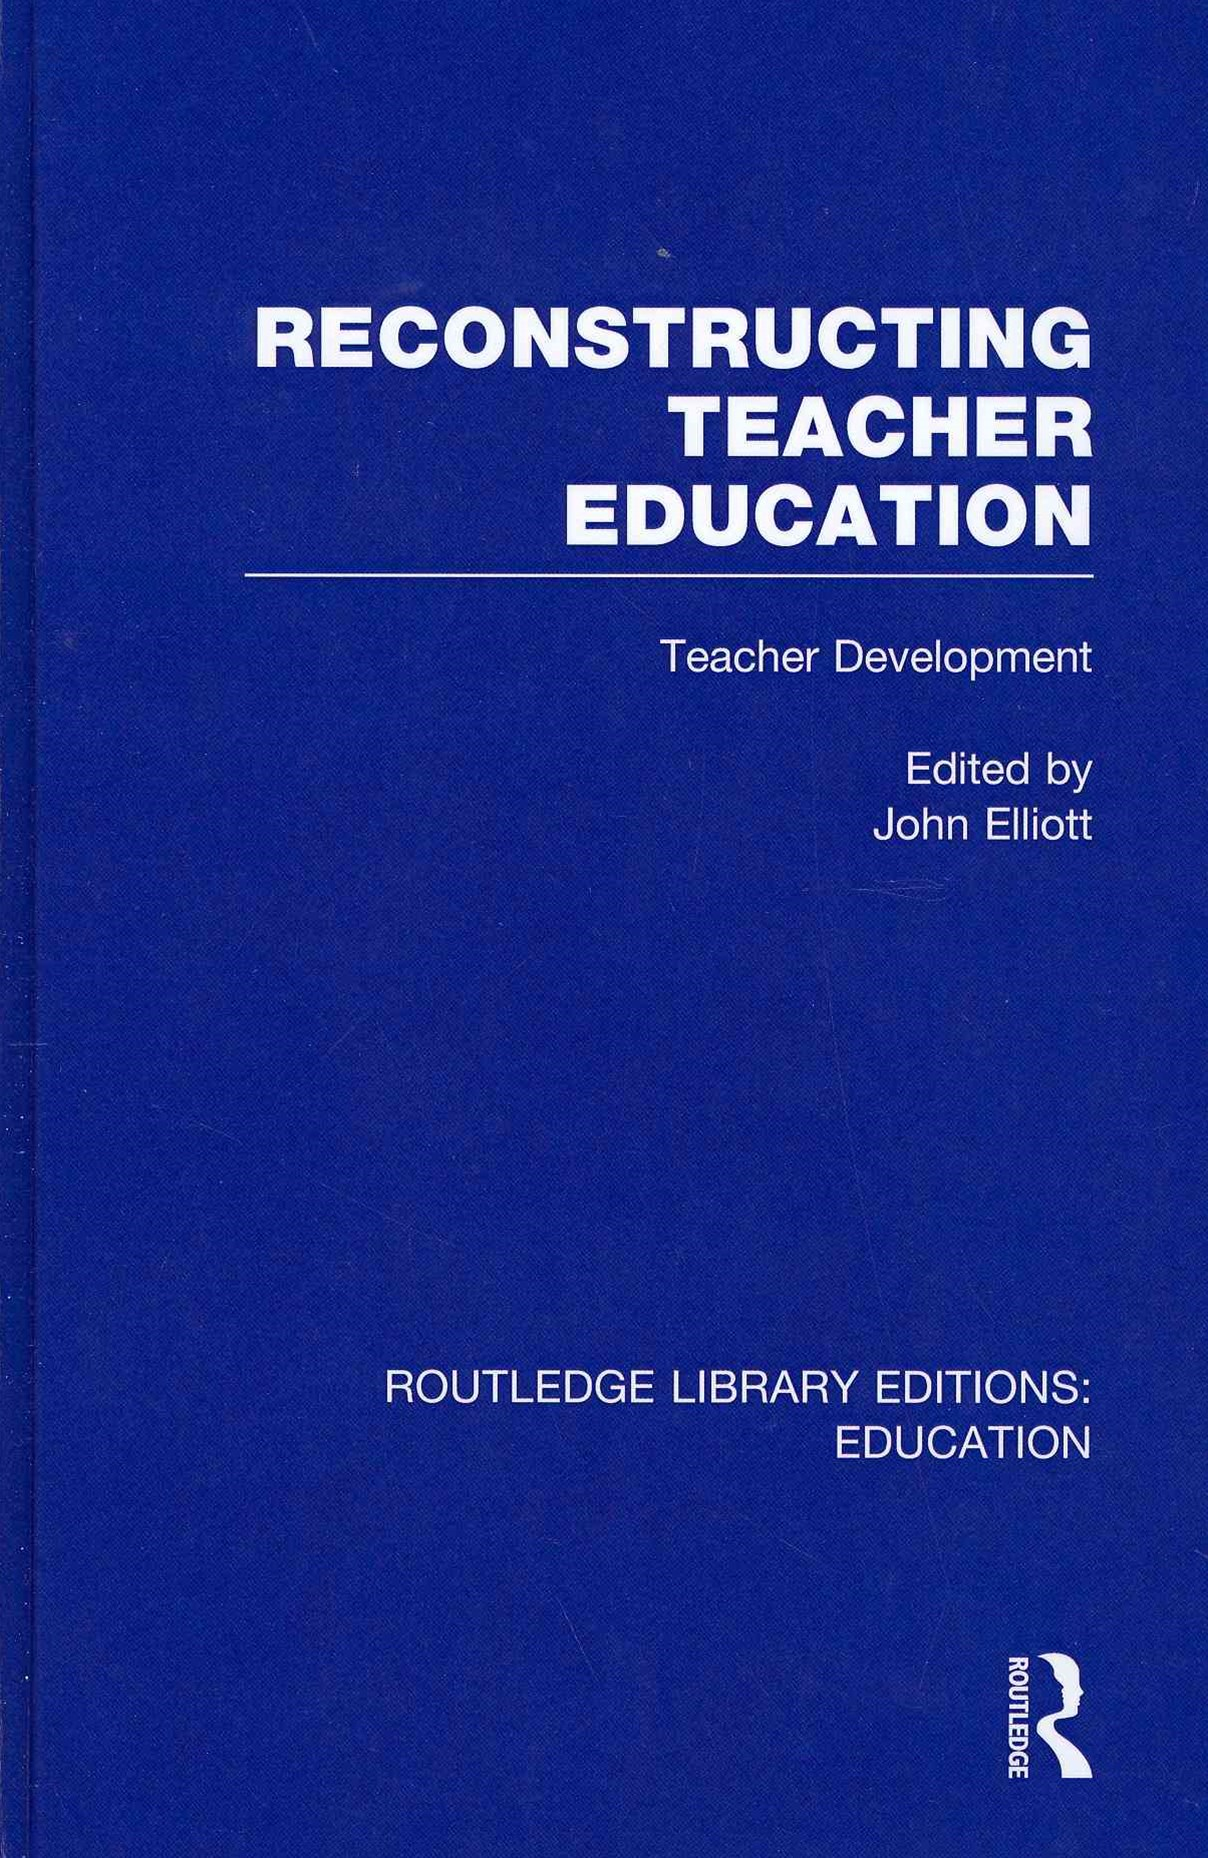 Reconstructing Teacher Education